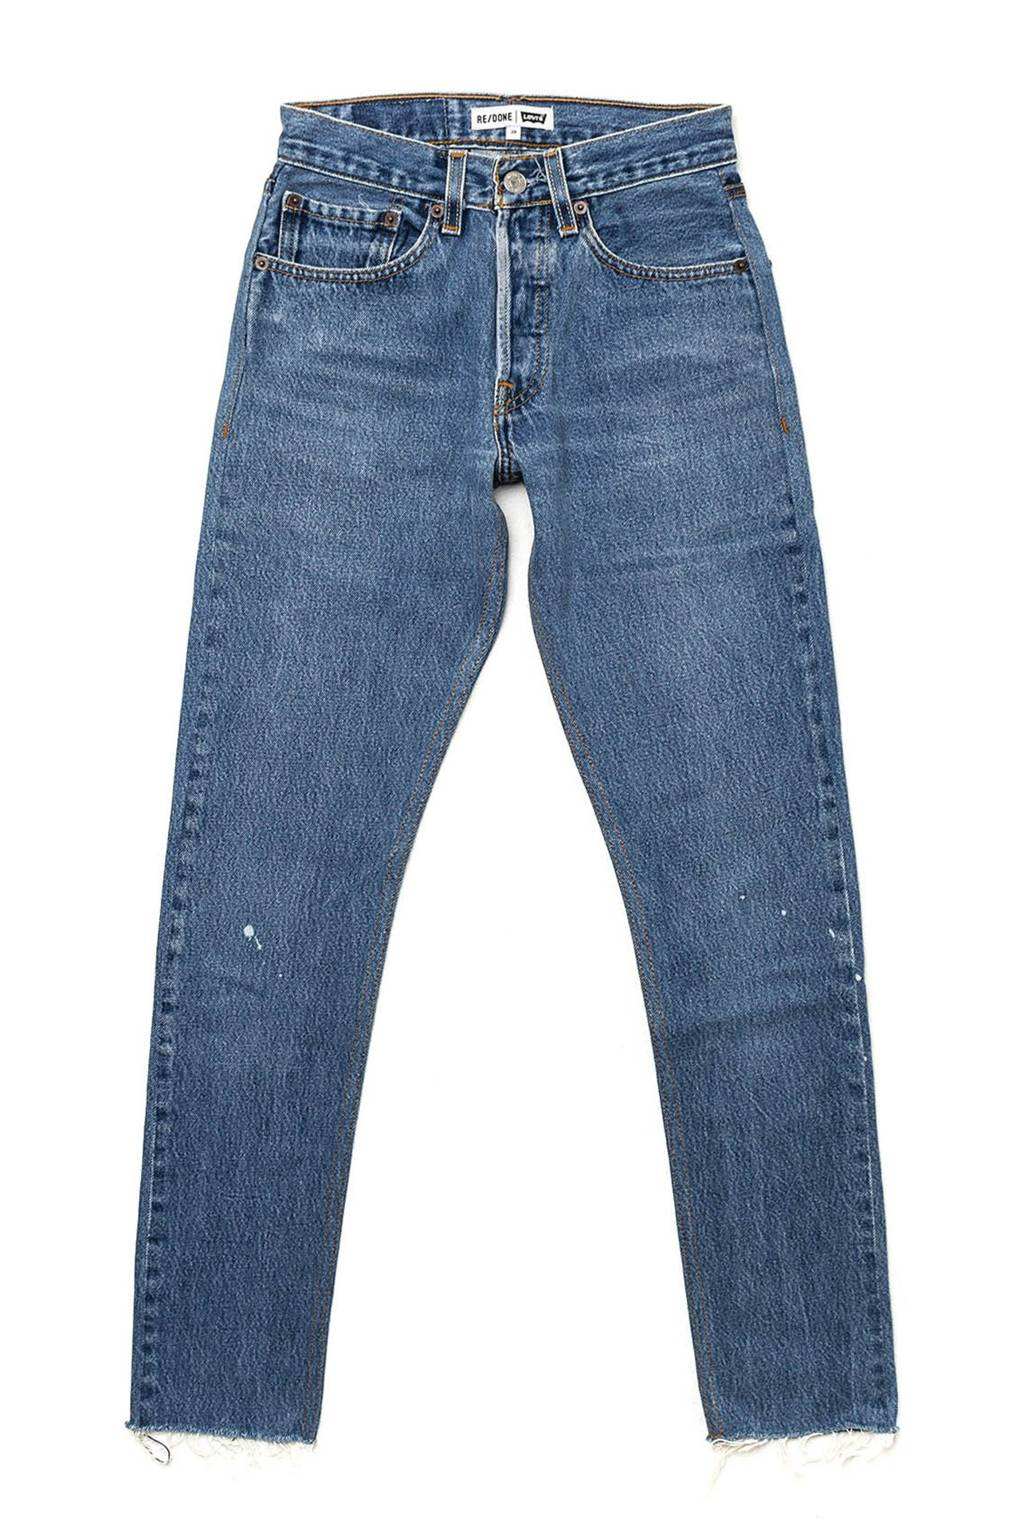 f9209fb8bd3 Shop the trend: the best Rigid High-Waisted Jeans for Spring 2016 | British  Vogue